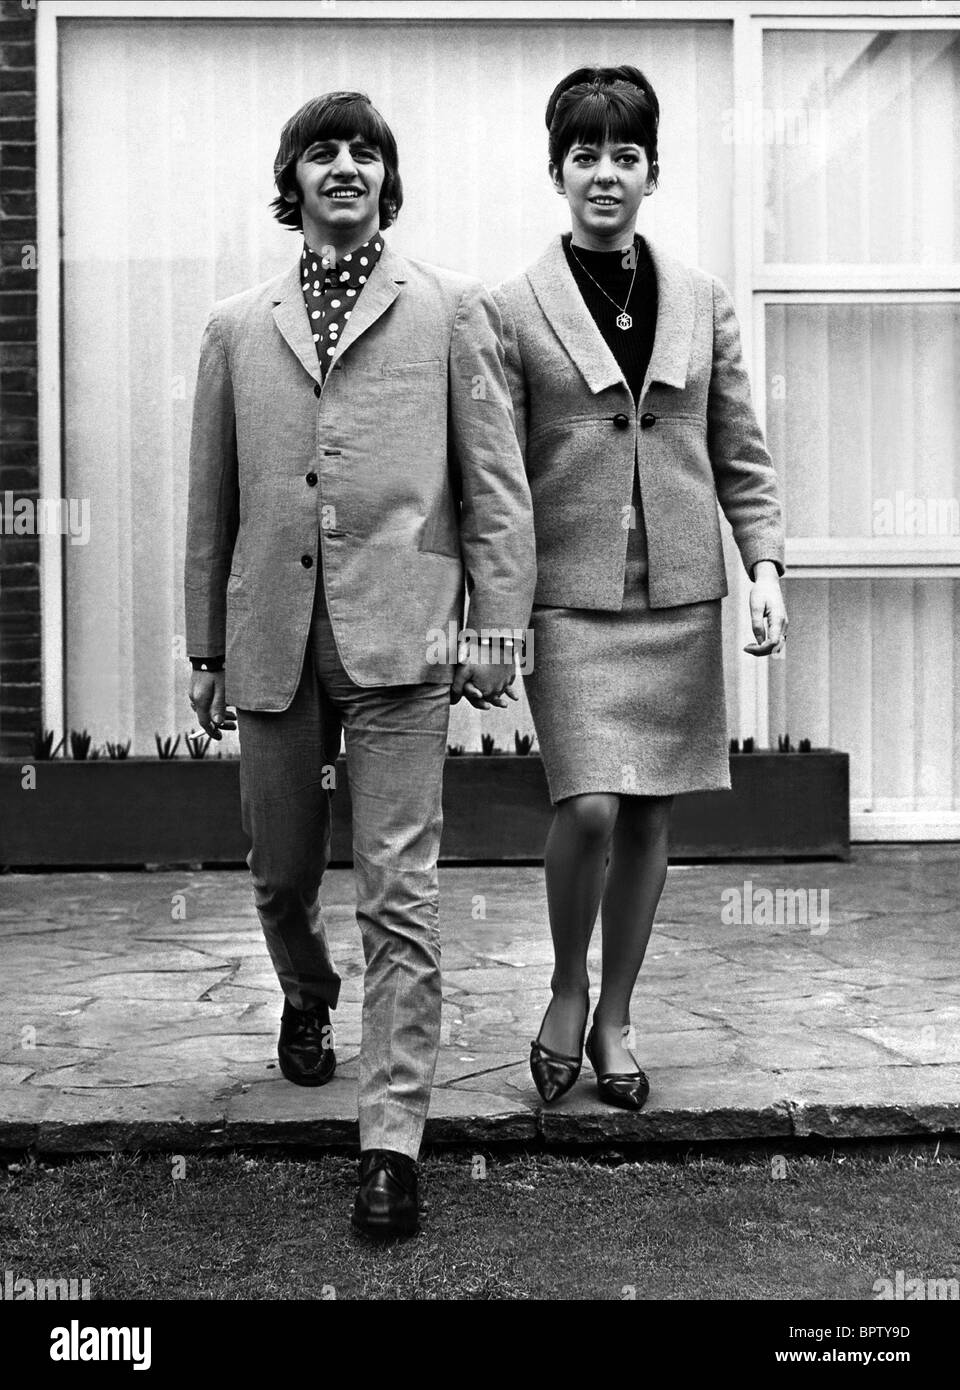 RINGO STARR & MAUREEN STARR MUSICIAN WITH WIFE (1965) - Stock Image